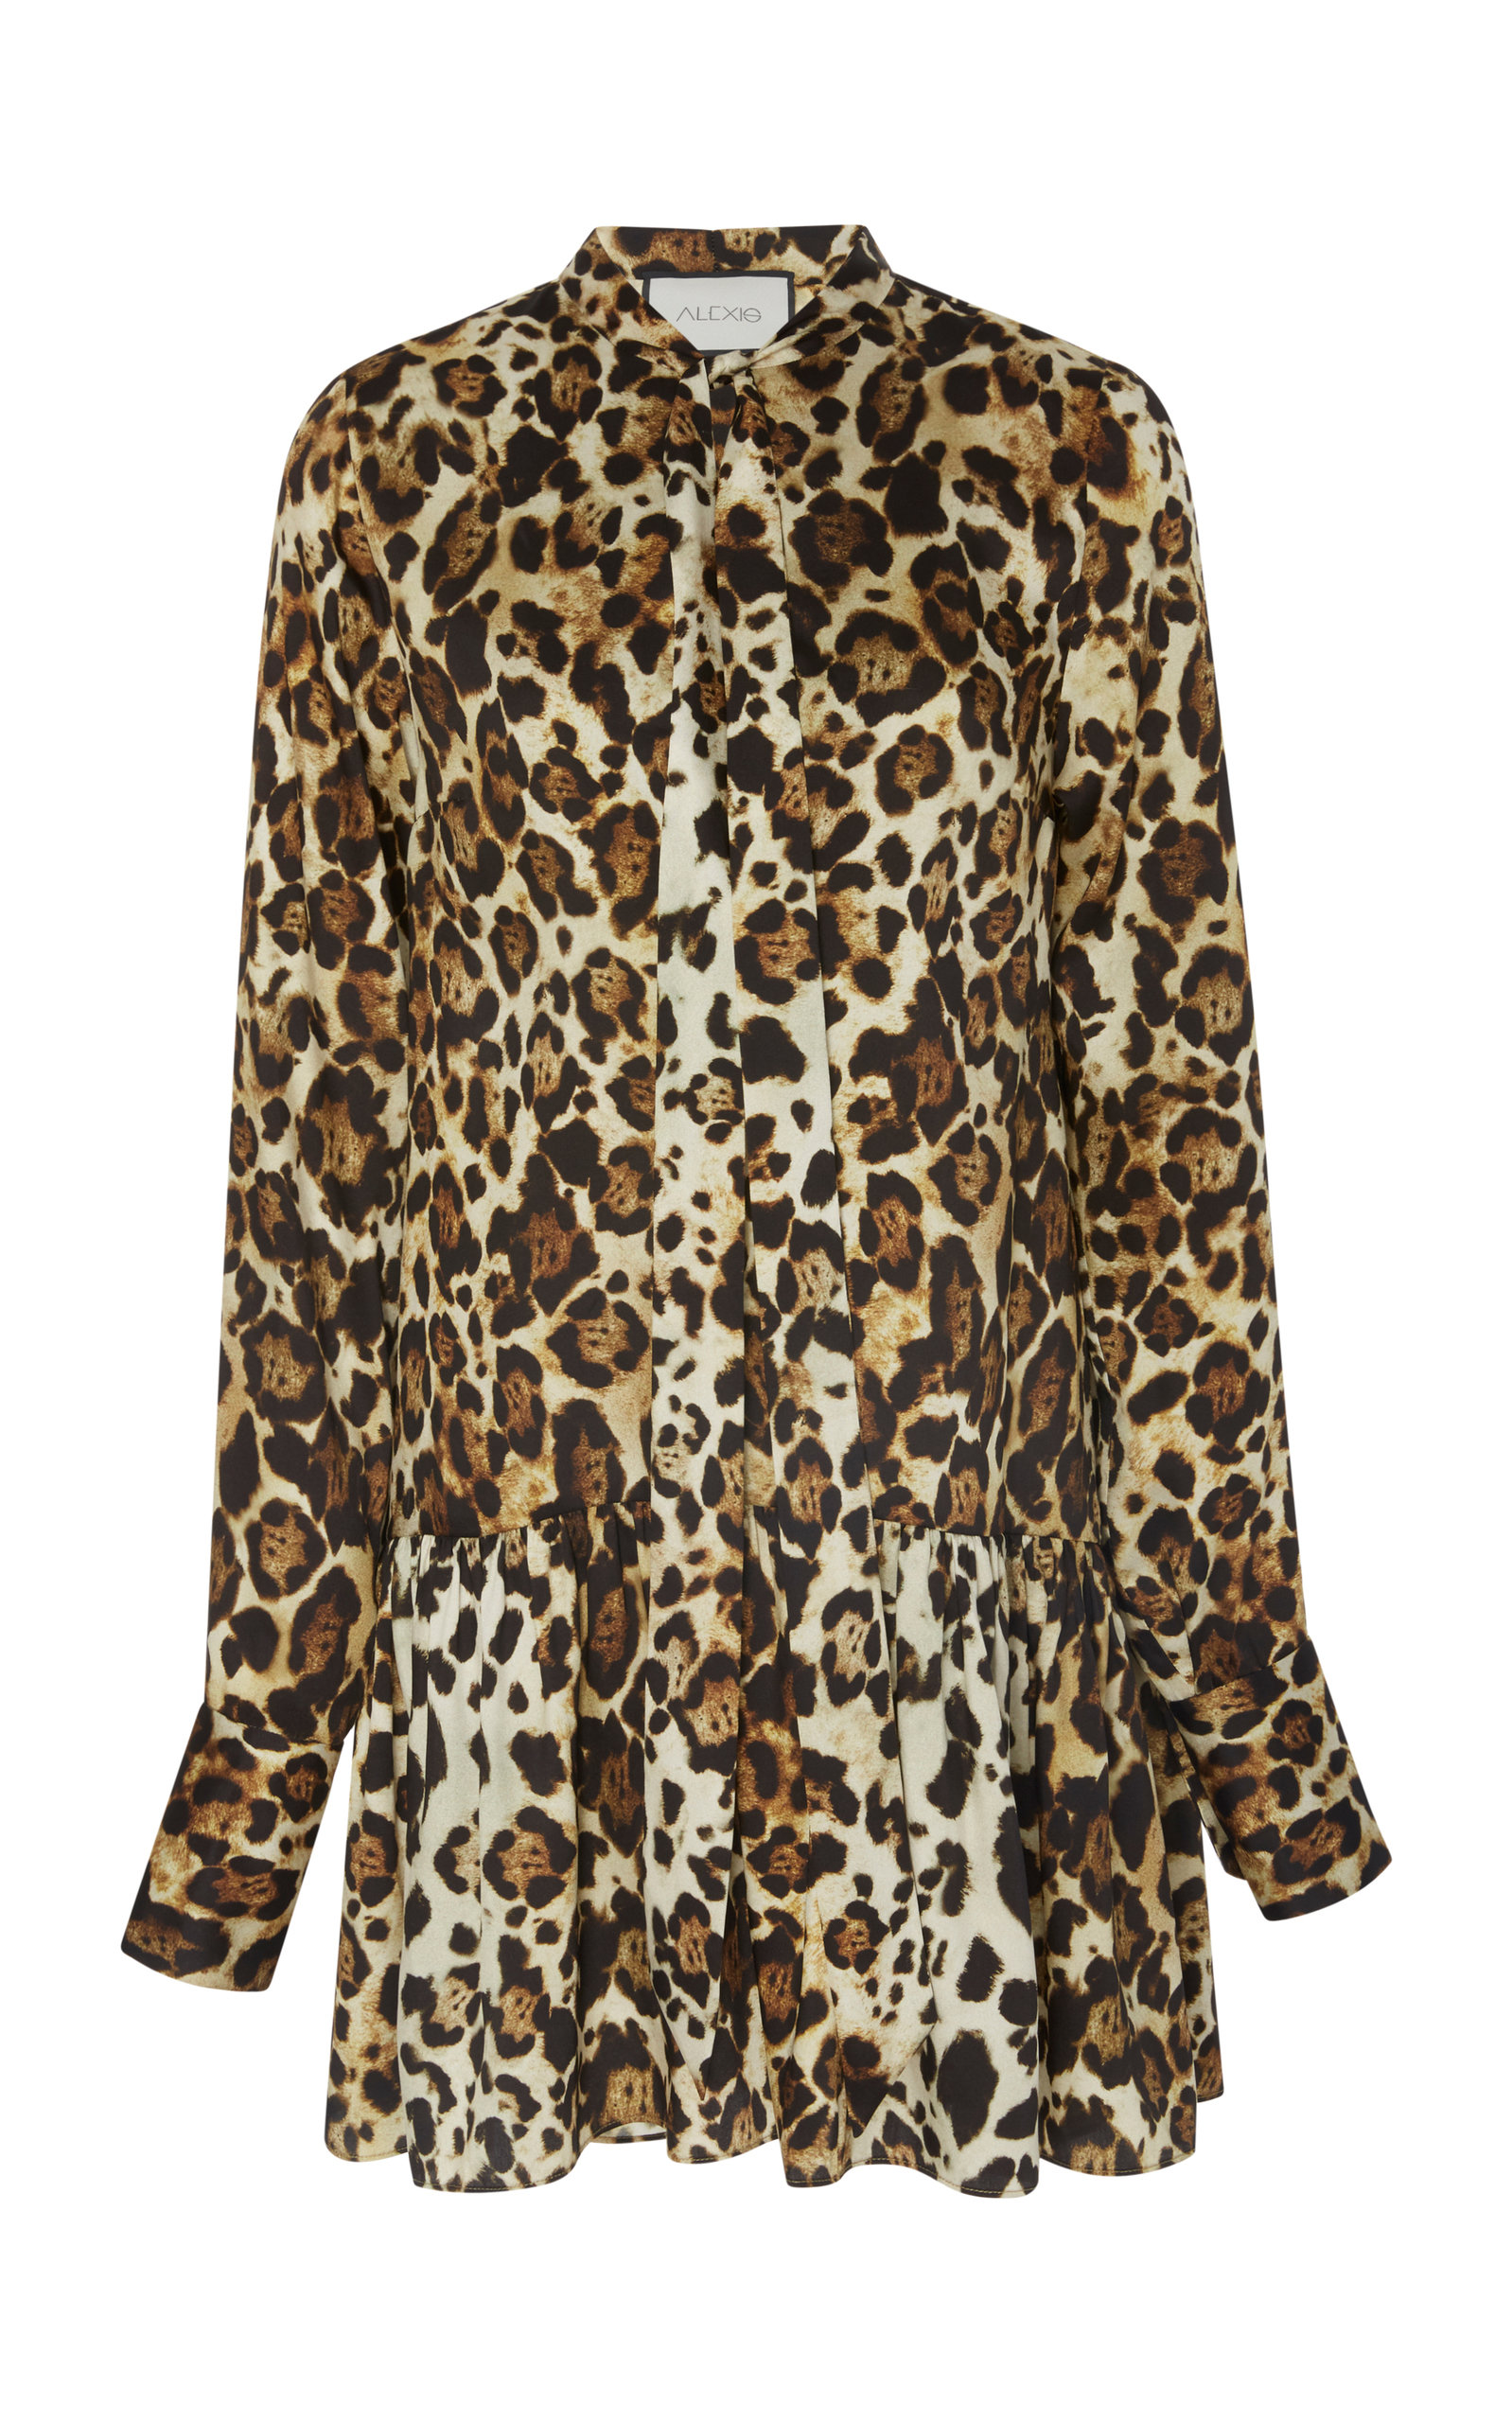 ALEXIS Lydia Leopard Mini Dress in Brown